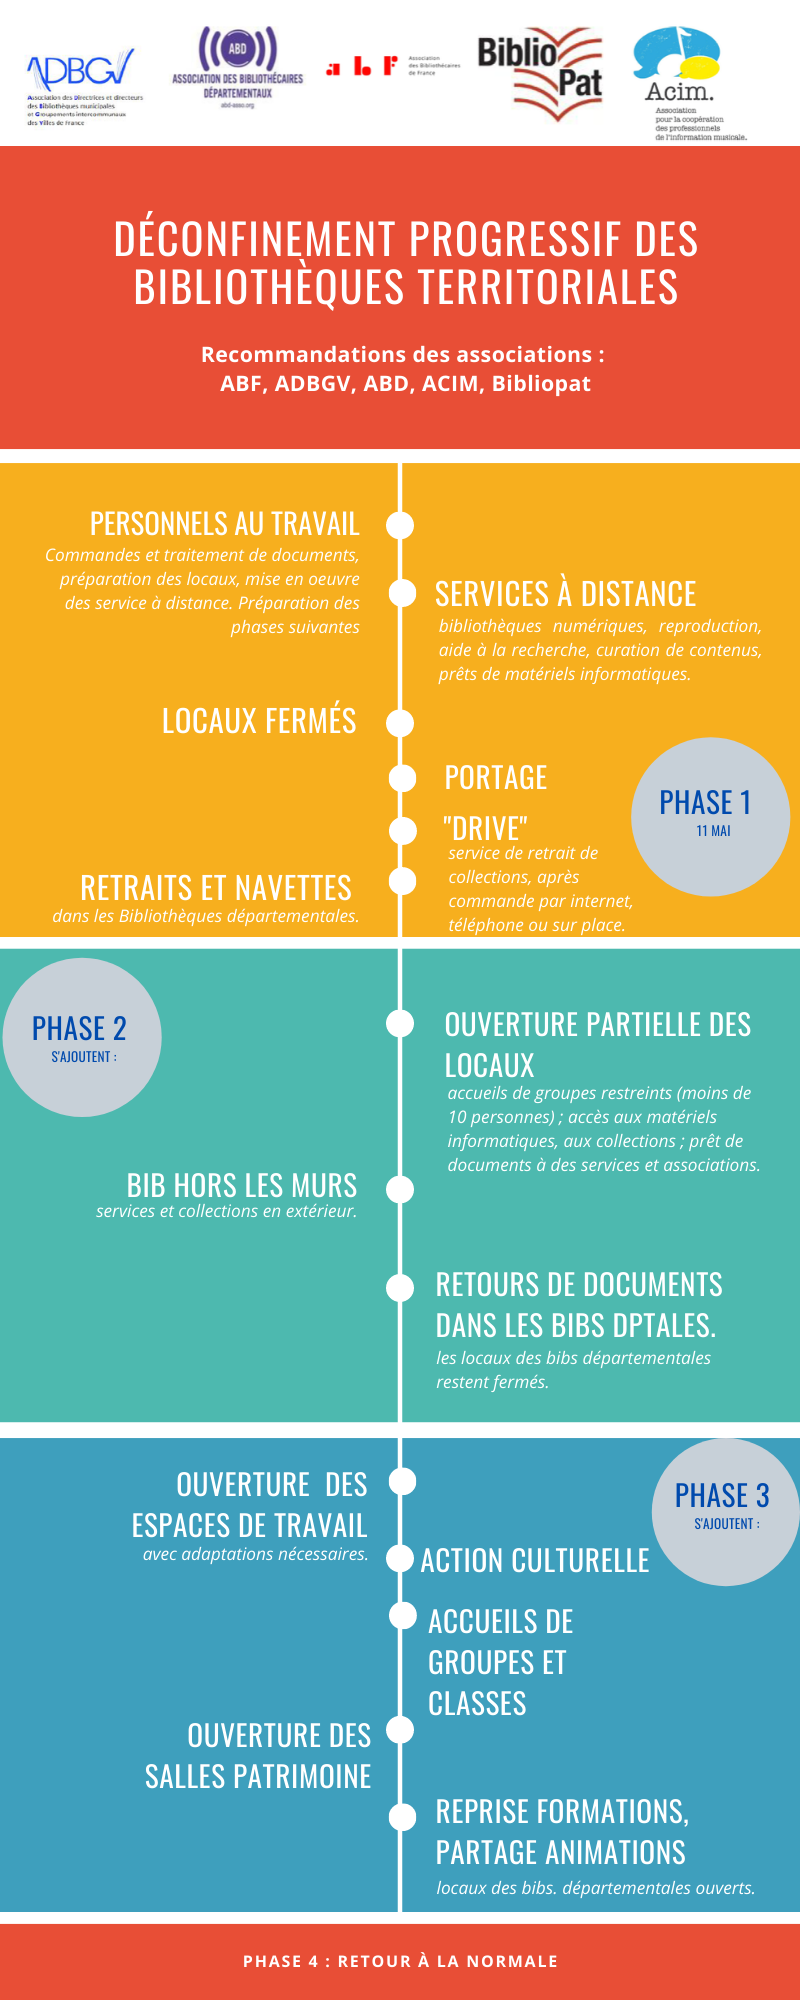 infographie-phases-deconfinement-bibliotheque.png